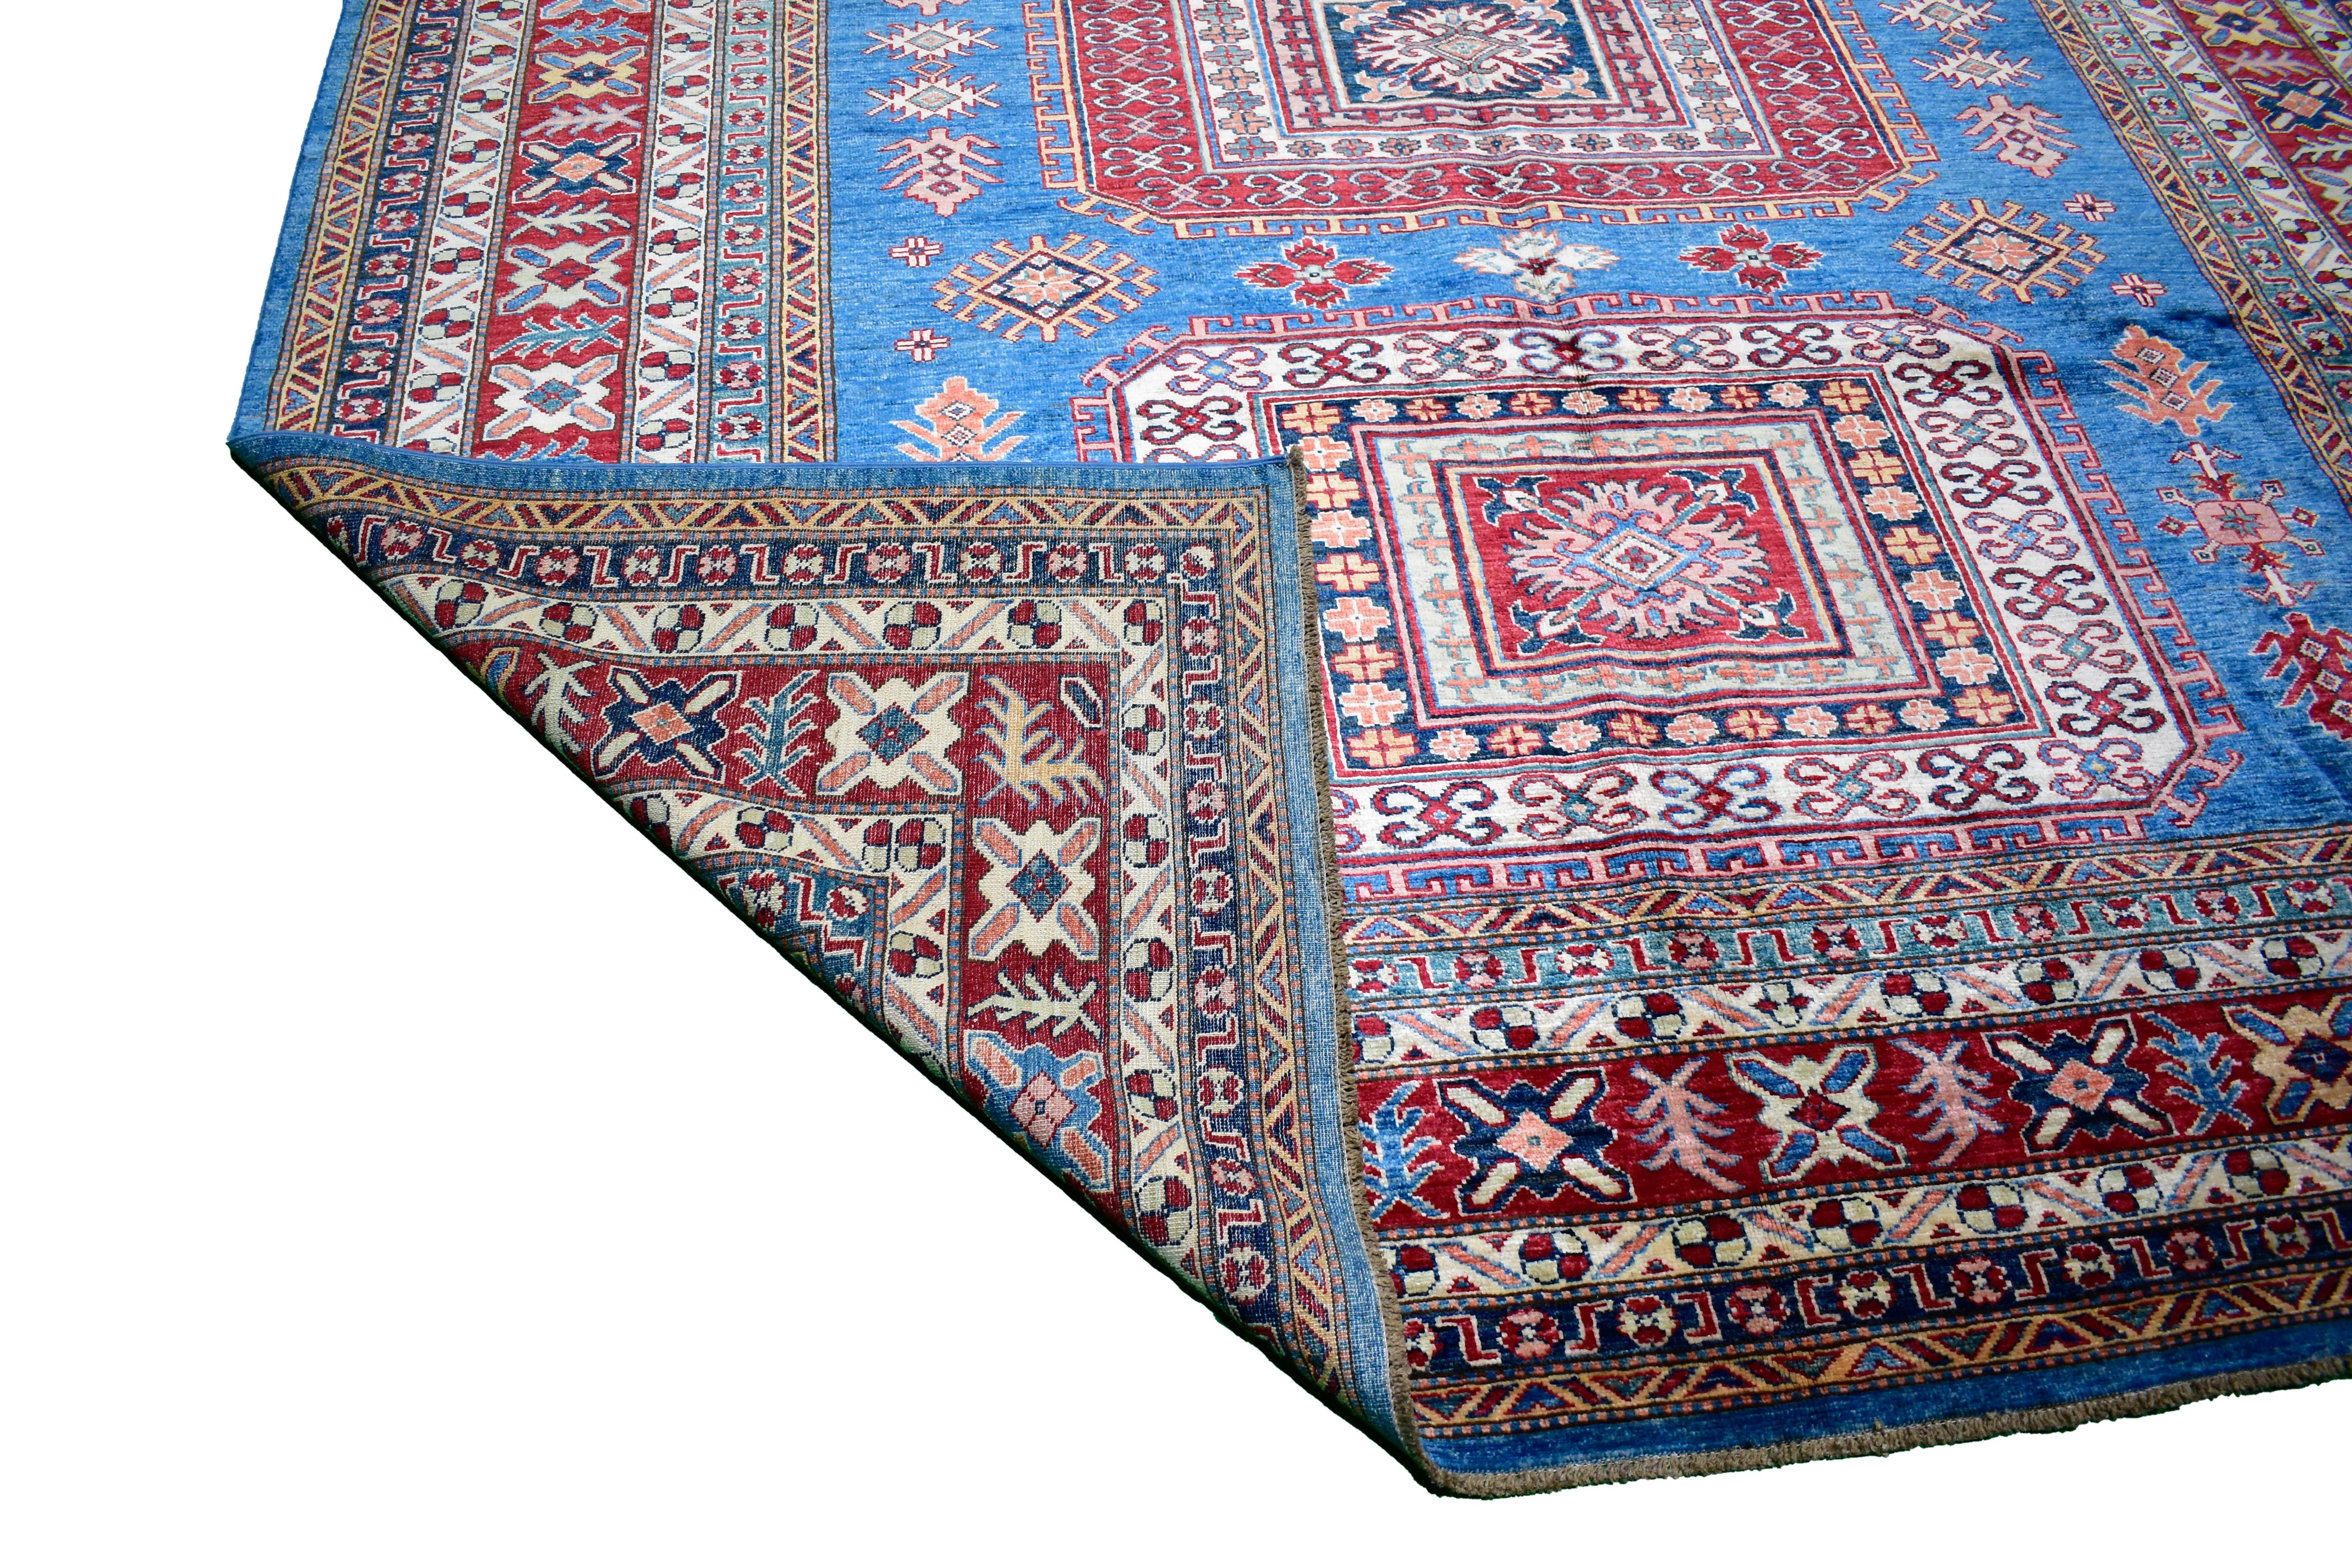 "Hand Knotted Kazak Area Rug > Design# 0428320246 > Size: 8'-1"" x 9'-10"" - Carpet Culture"